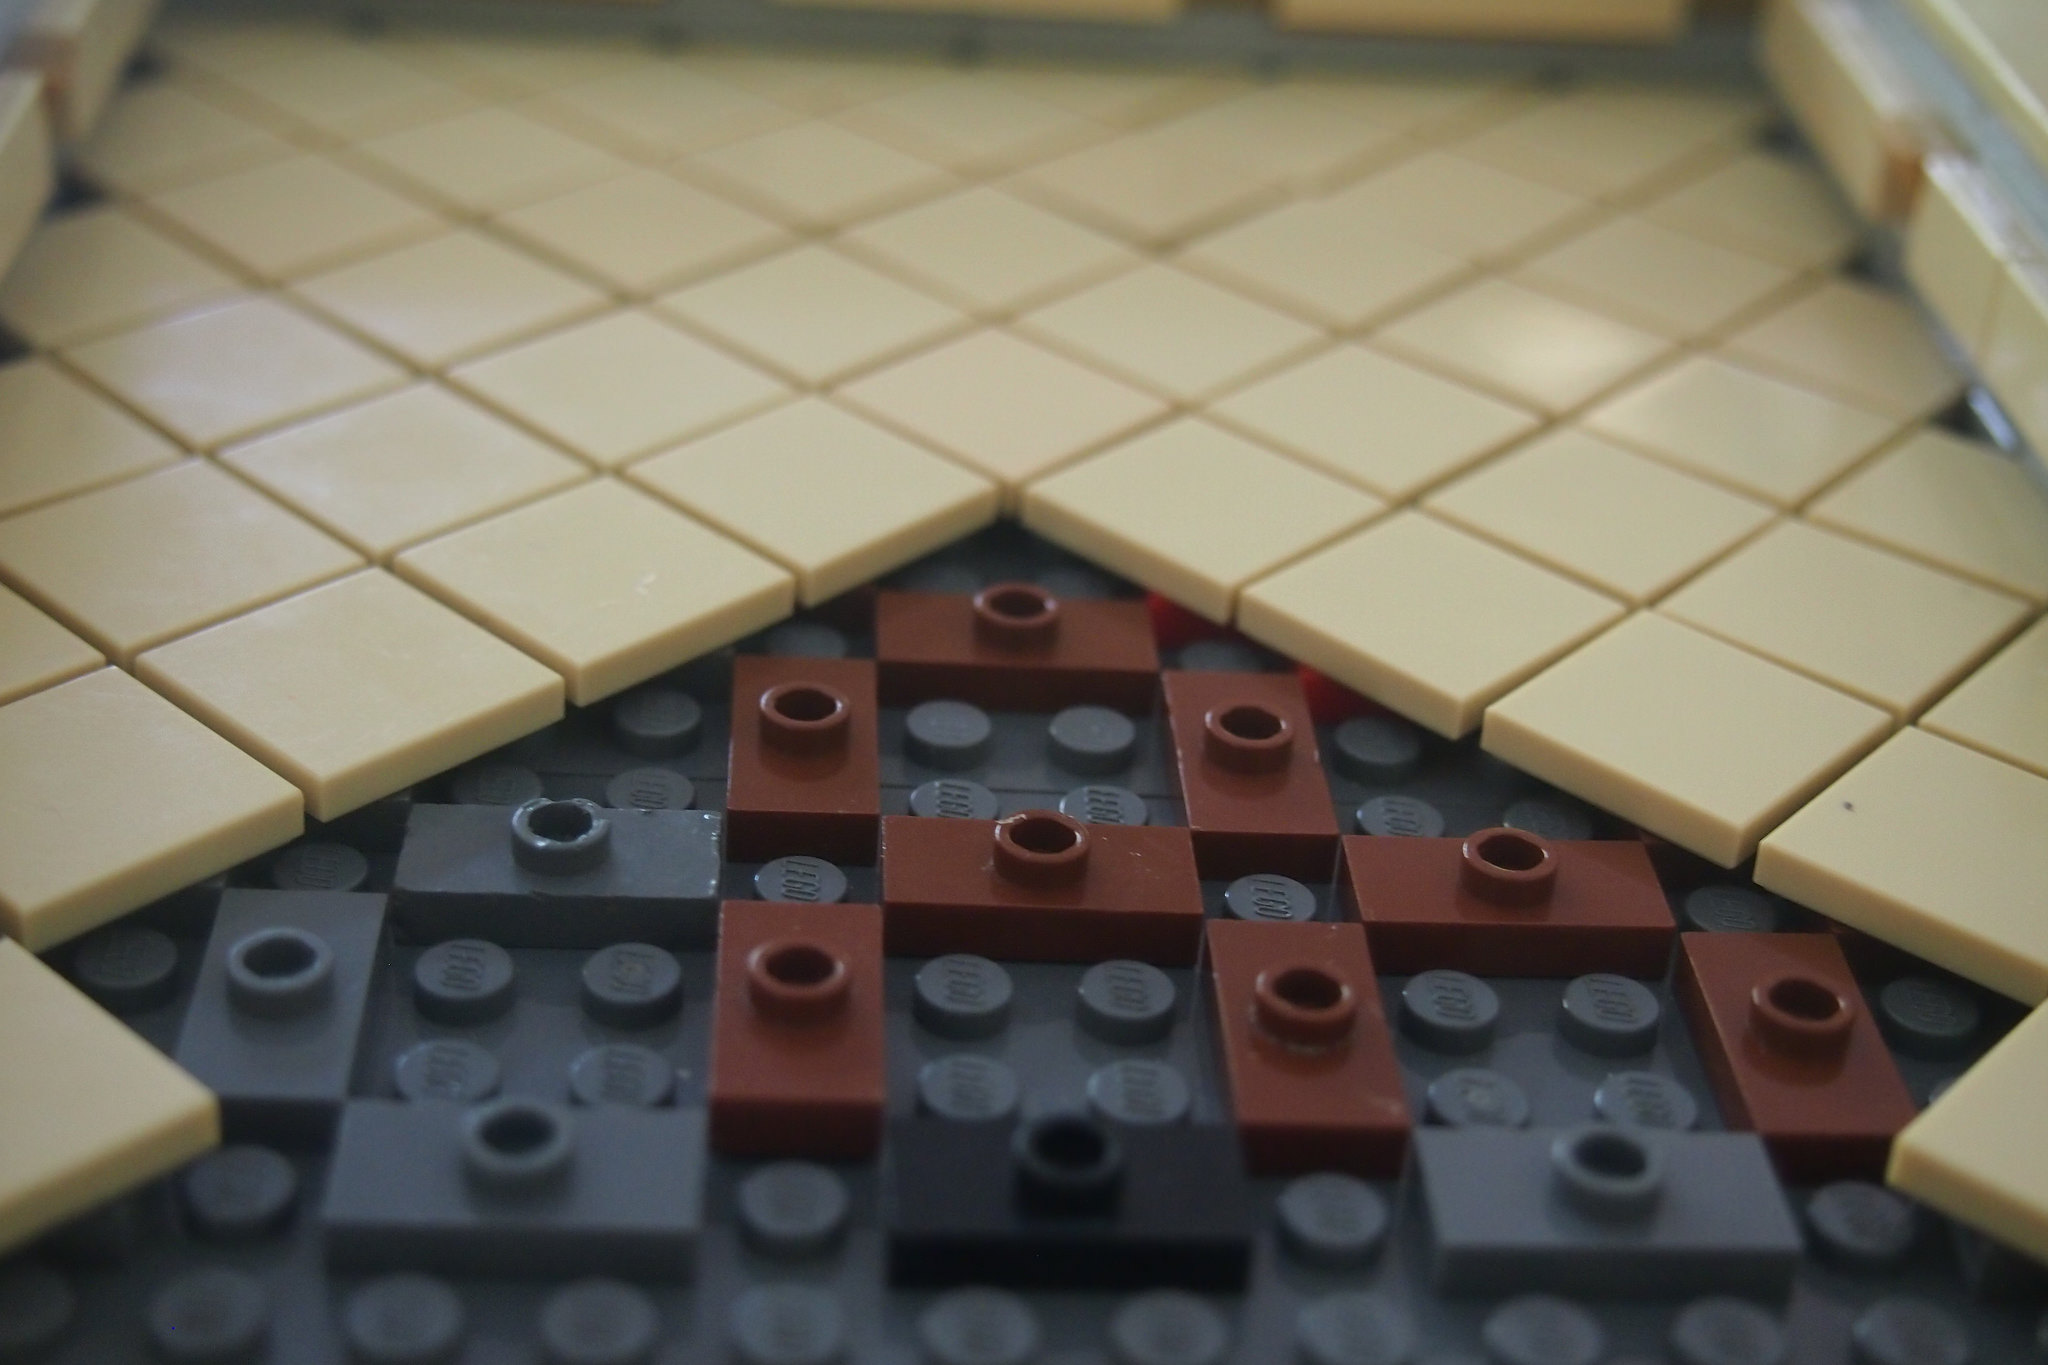 Diagonal tiles for floors or detailing